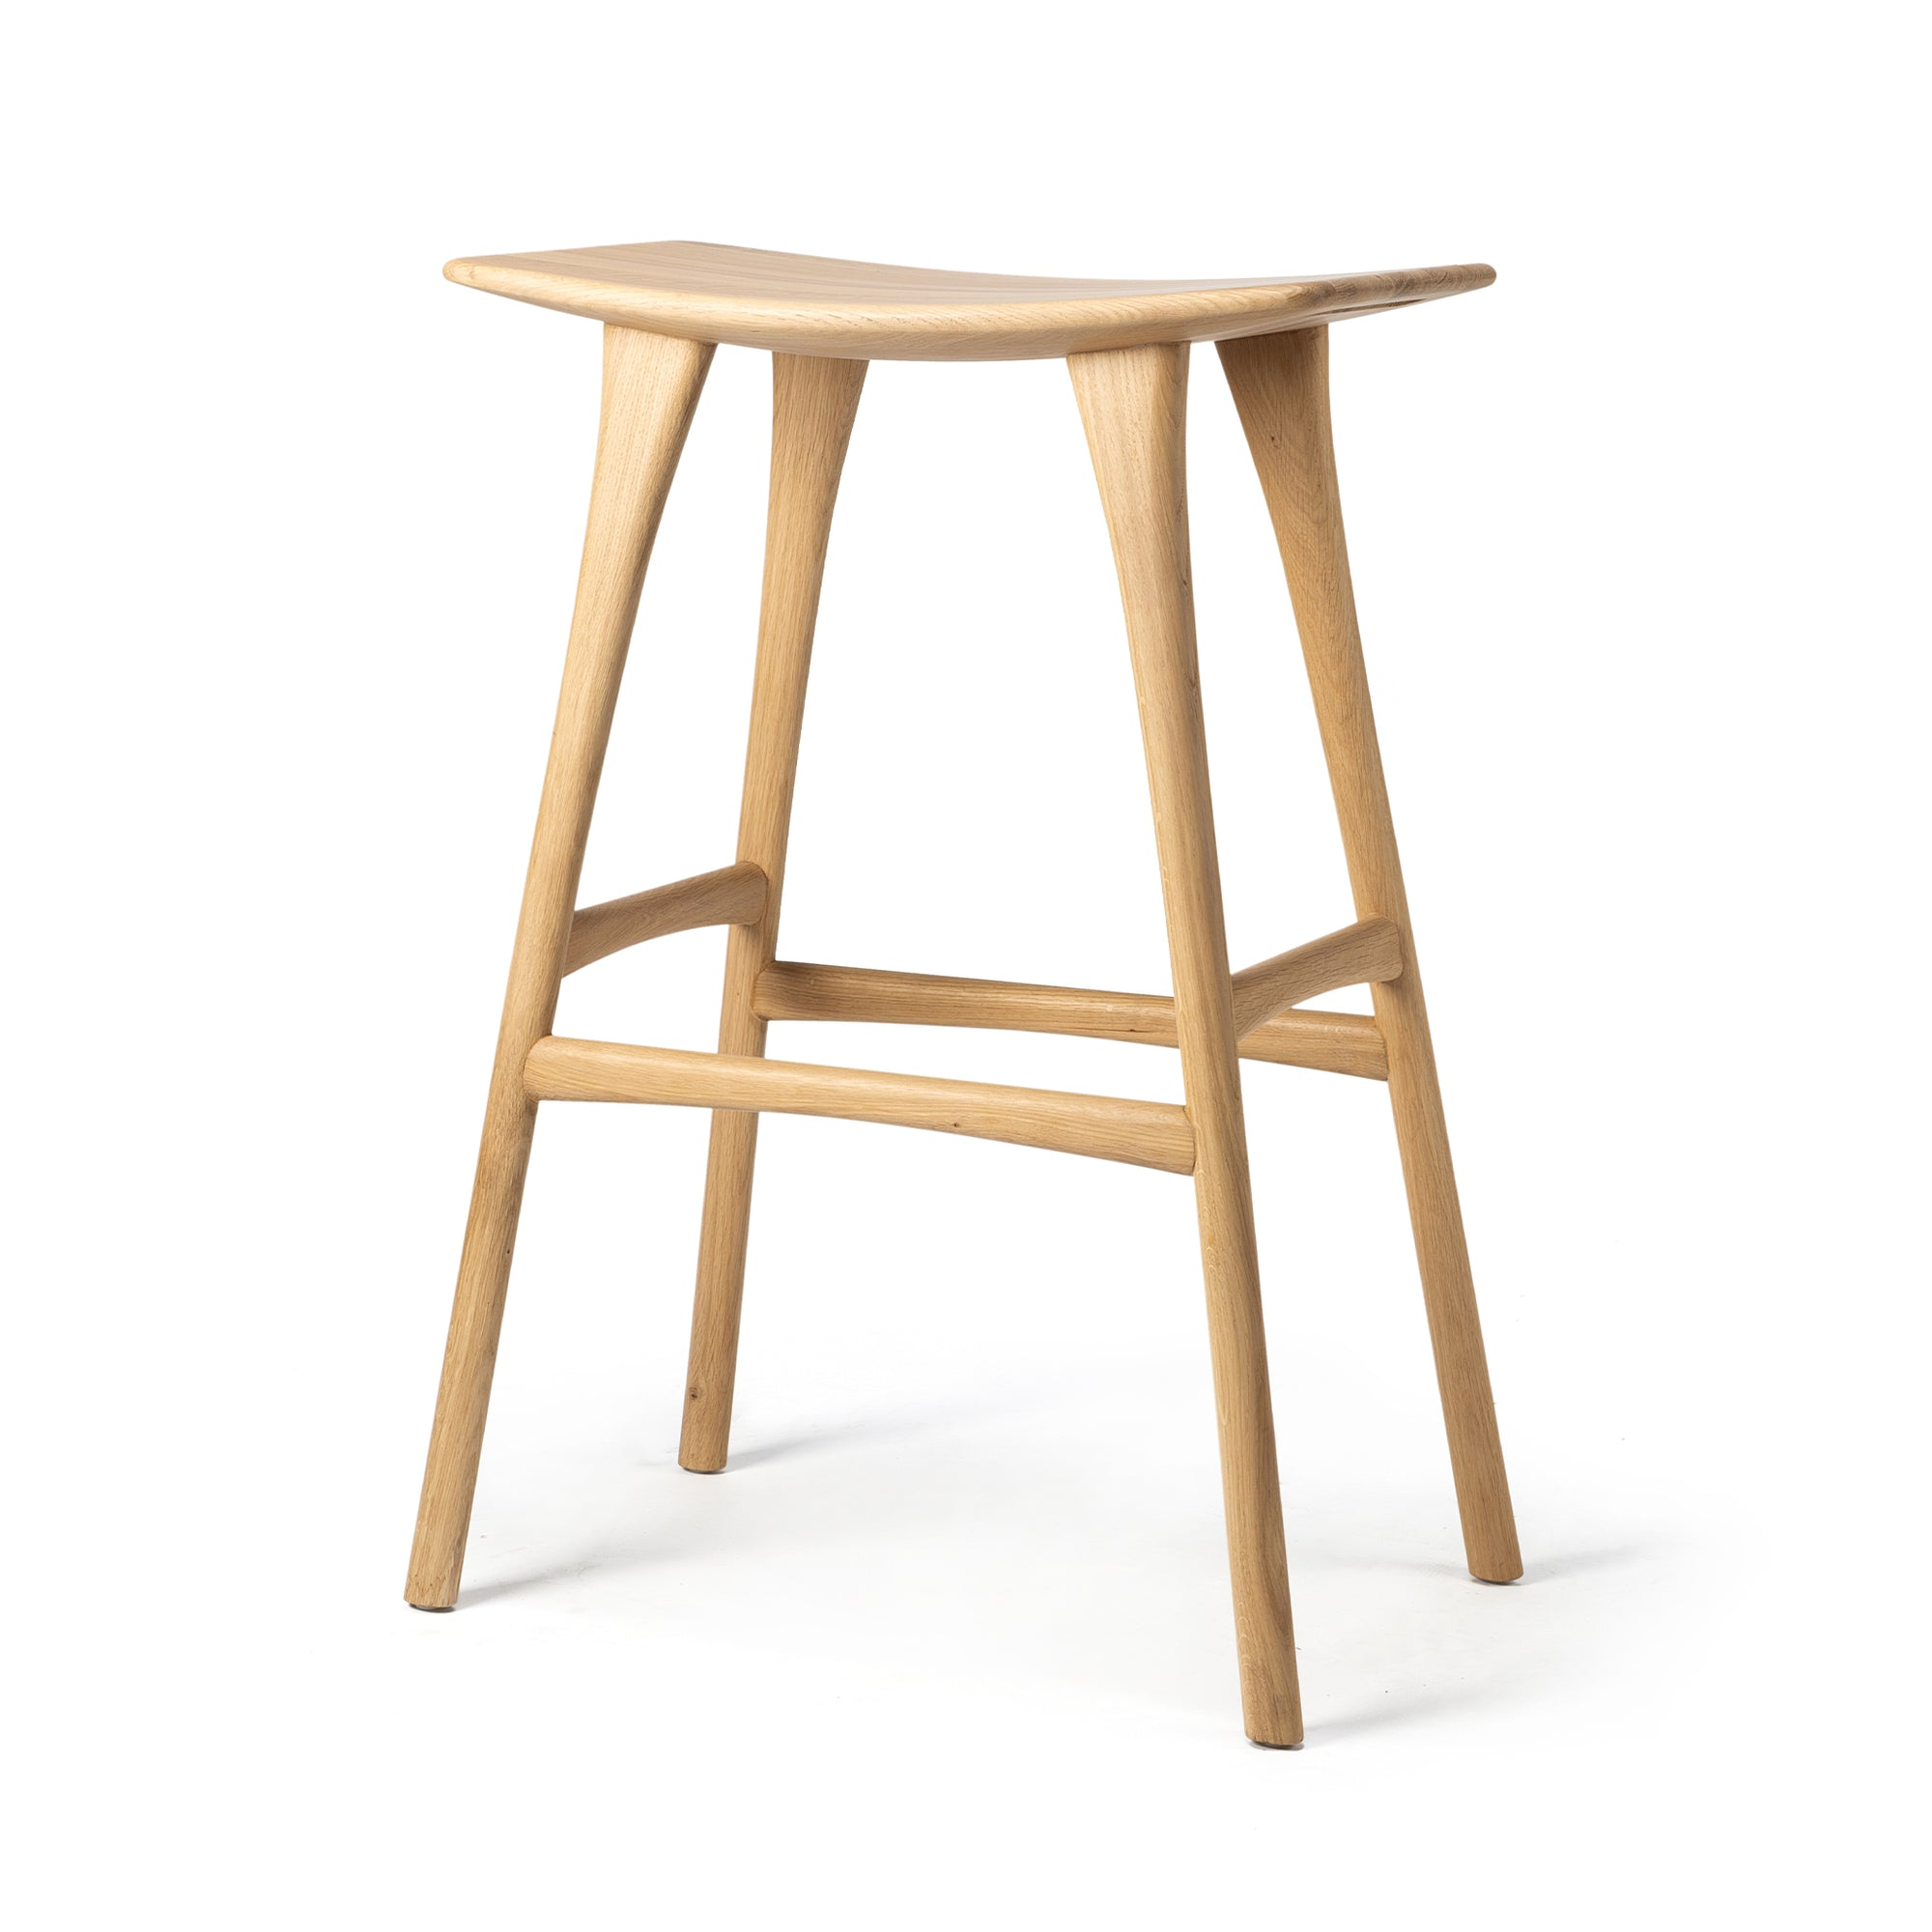 Oak Osso bar stool